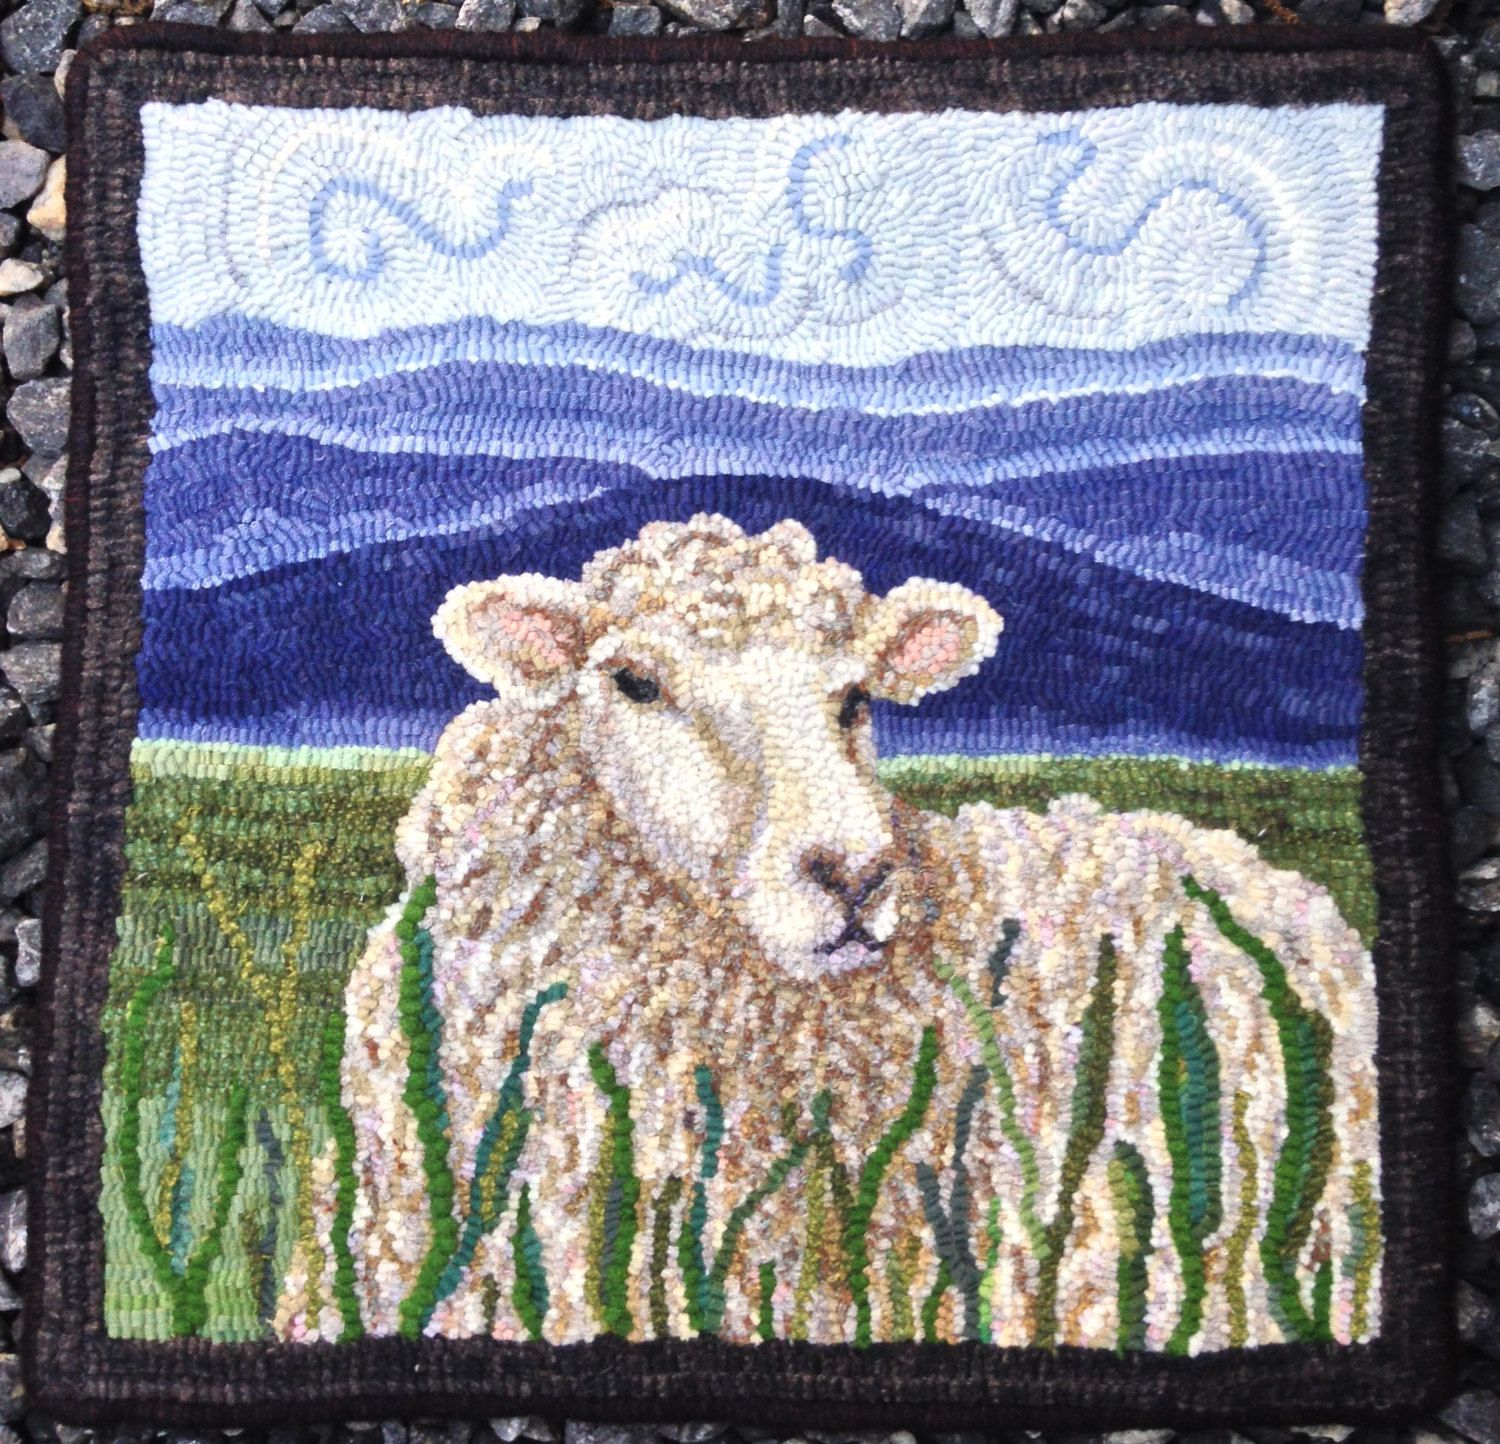 Sheep in the Meadow measures 18 by 18 inches This pattern is hand drawn on primitive linen with serged edges and generous 4 inch borders. No wool is included. As the designer of this pattern, I own the copyright. Please respect my right by not copying my design, distributing copies of my work, selling my design, or sharing my design on any other public website that may lead to copyright infringement.